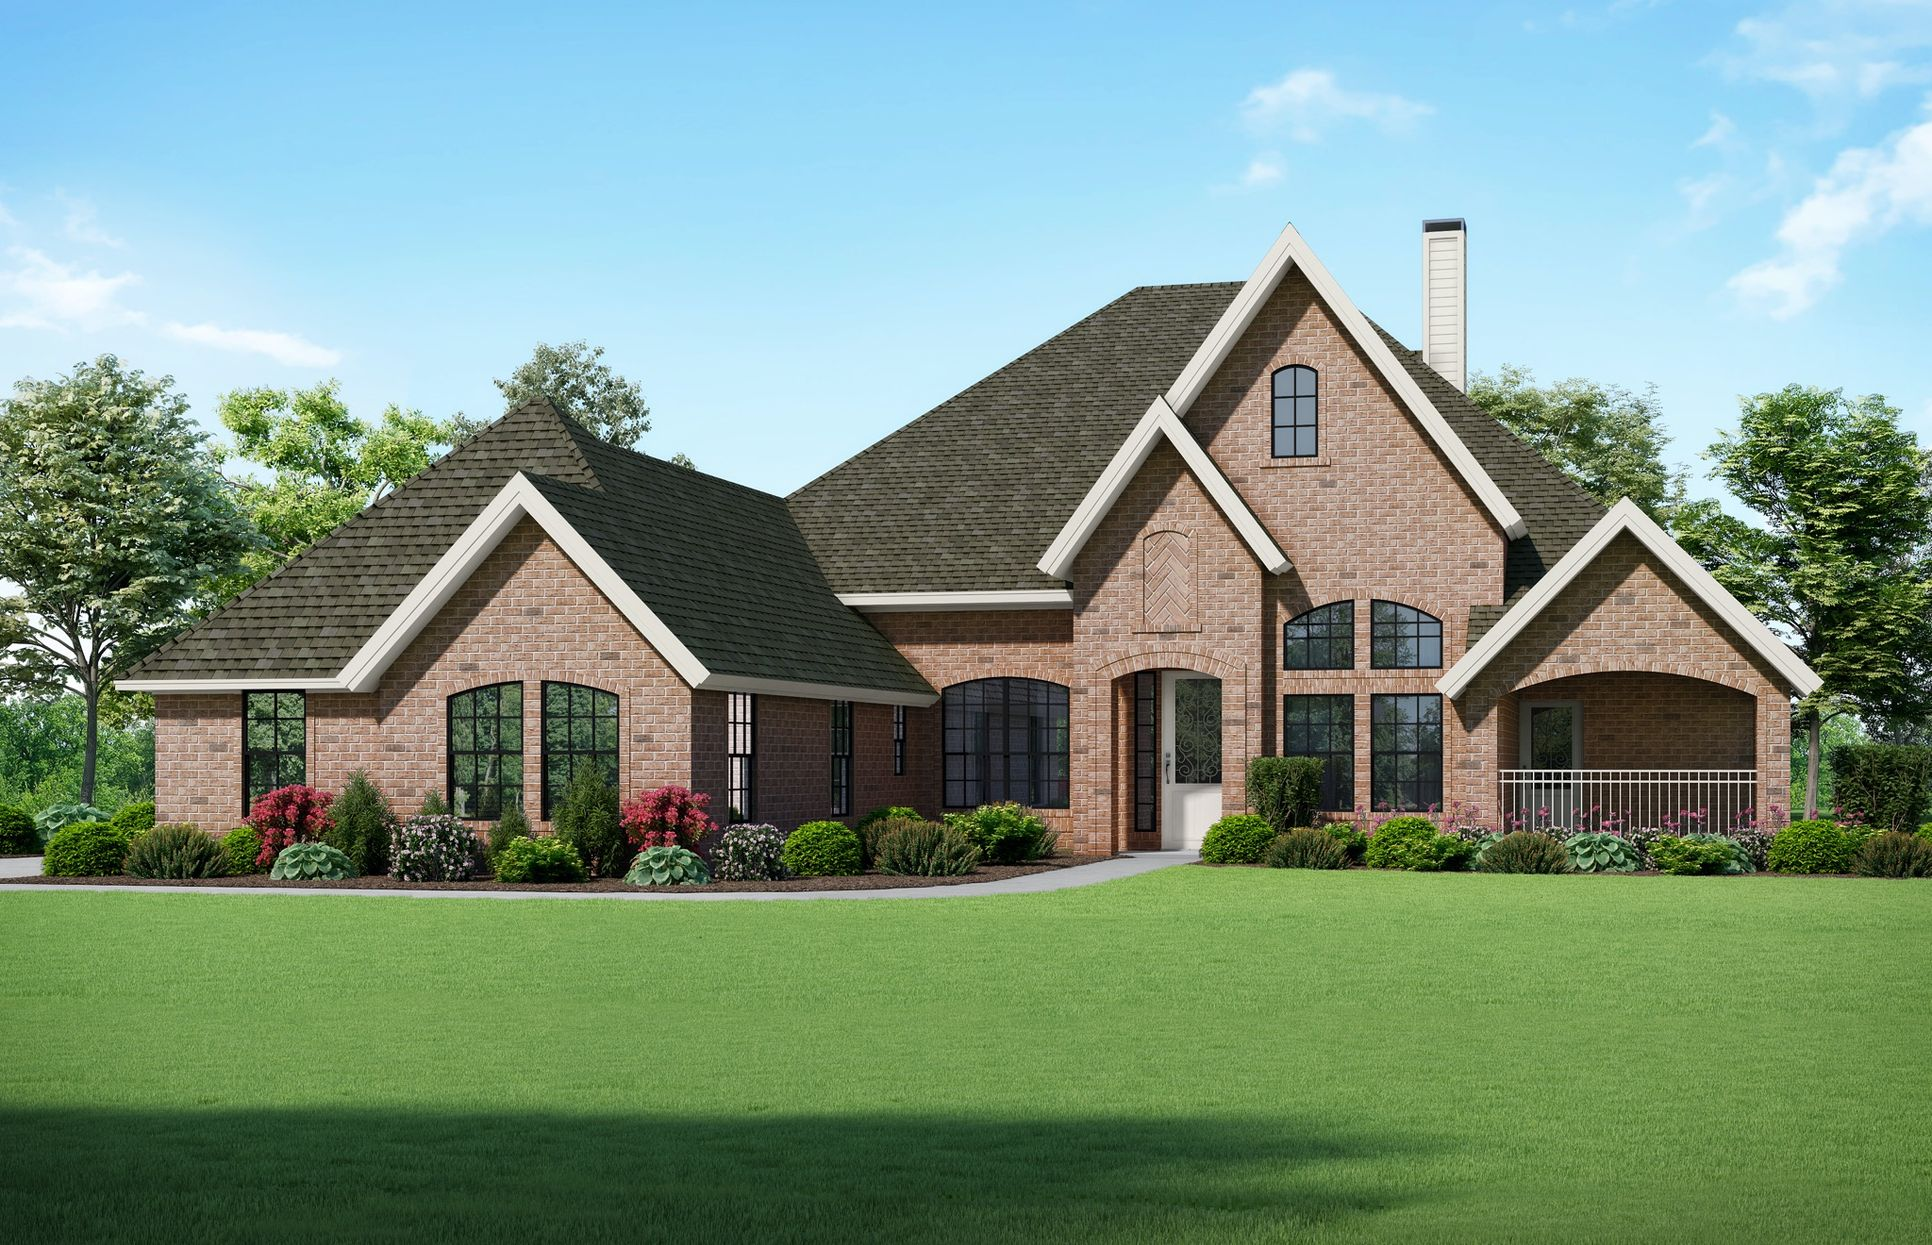 Jayden II Elevation F. Images are artist renderings and will differ from the actual home built.:Jayden II Elevation F